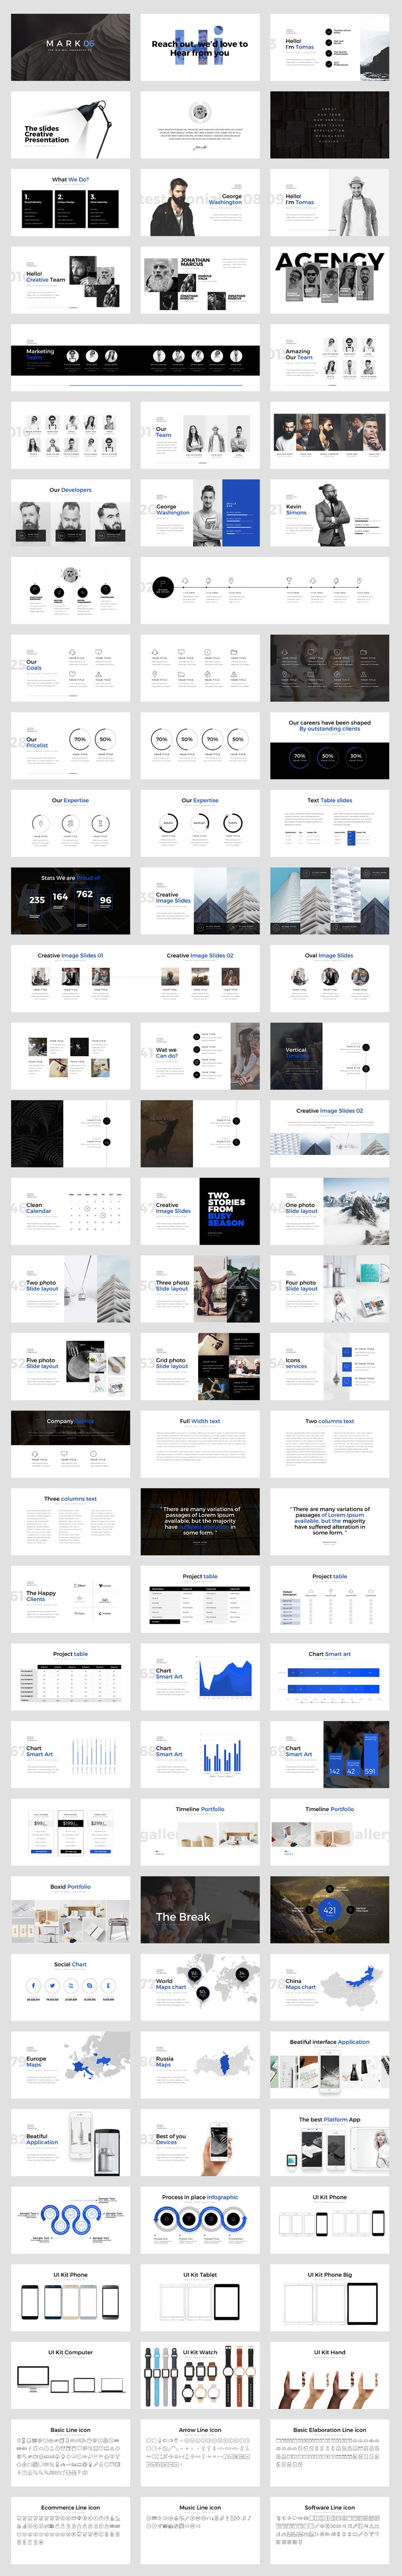 Mark06-Minimal Powerpoint Template by dublin_design on @creativemarket